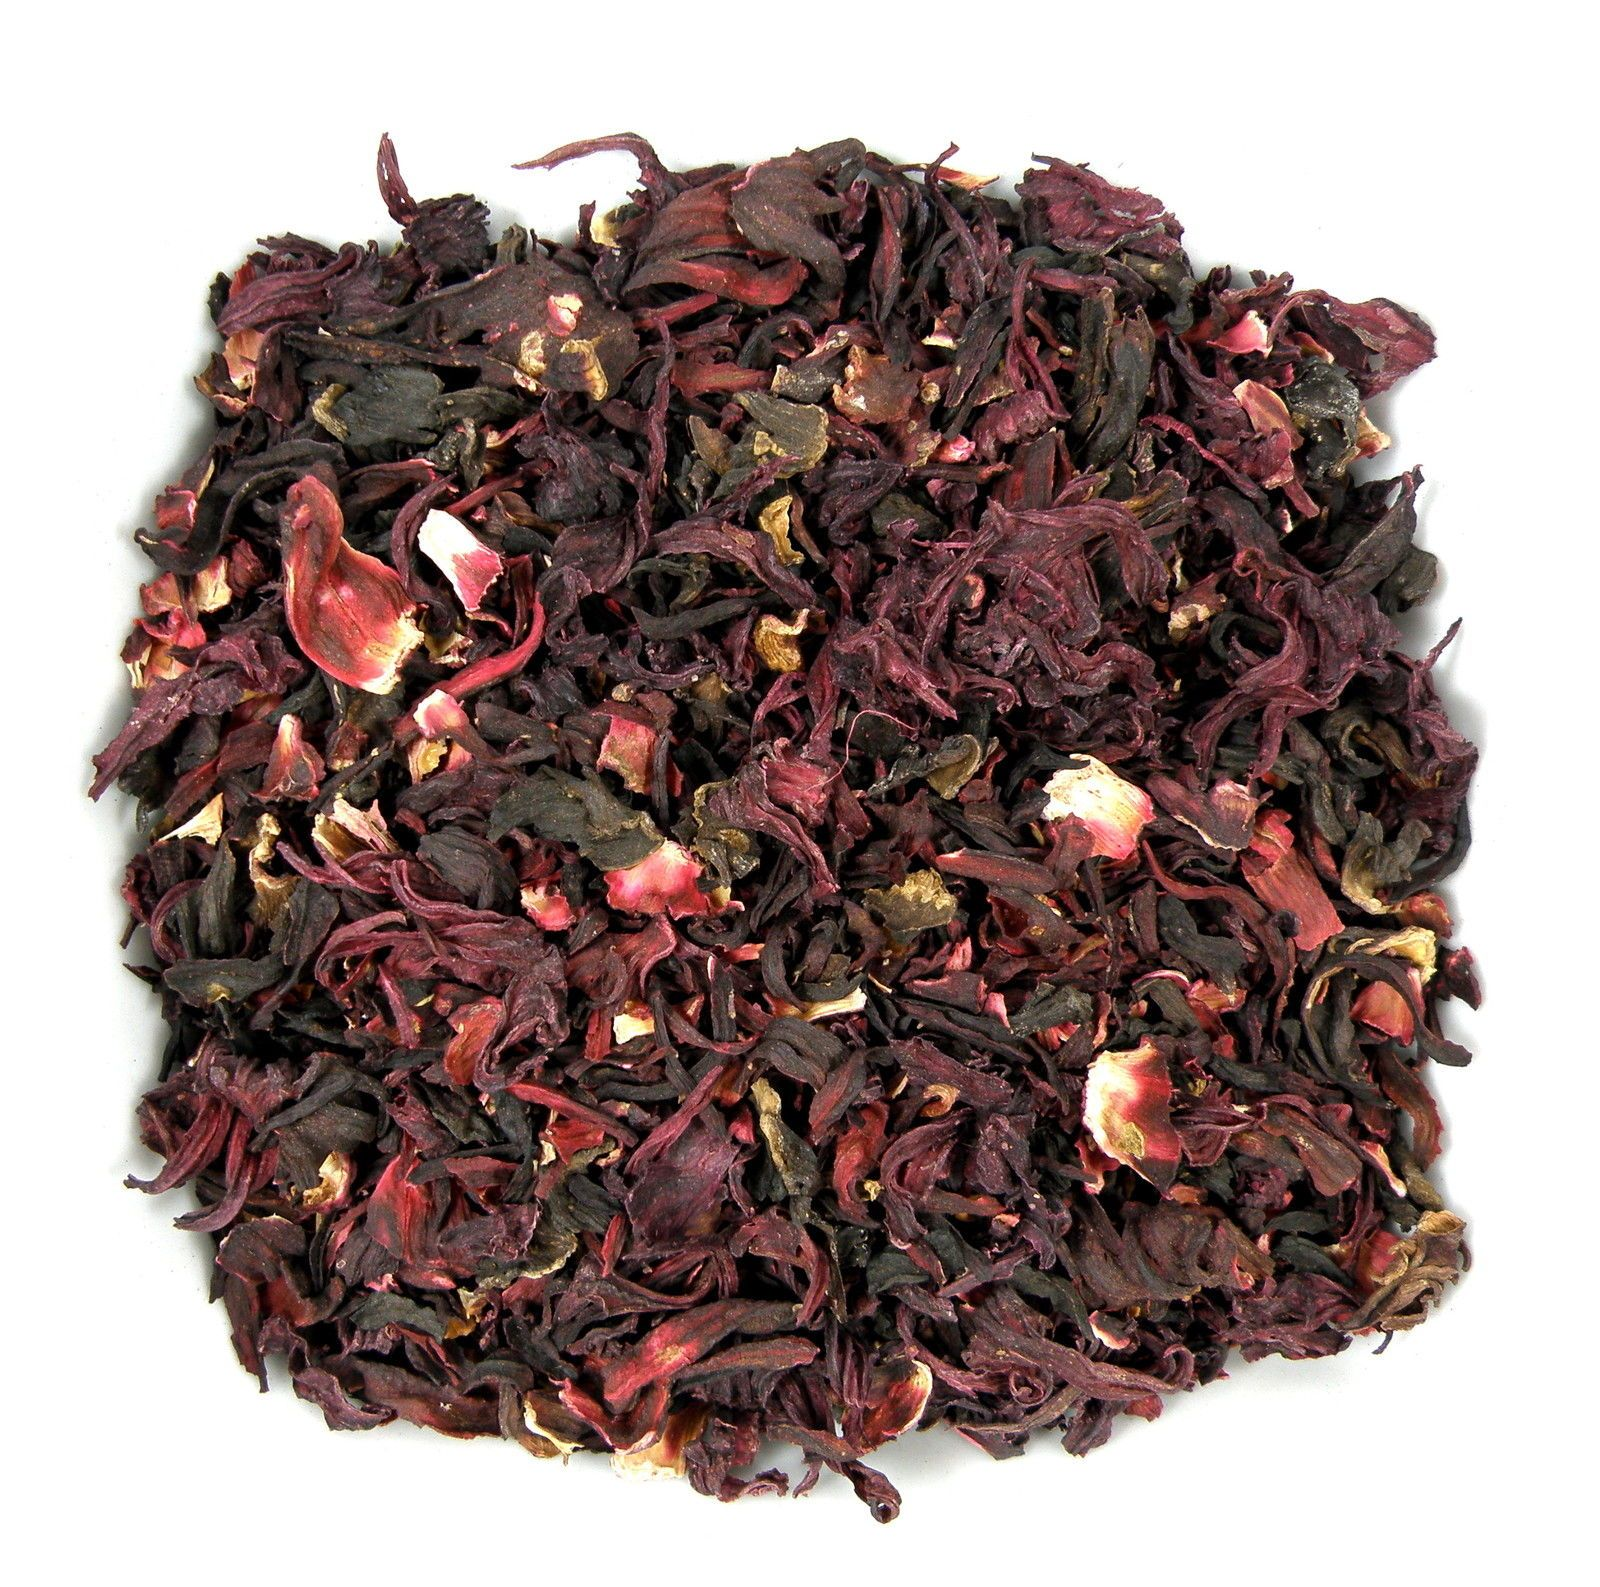 Pin By Marissa On Background Pinterest Hibiscus Flowers Teas